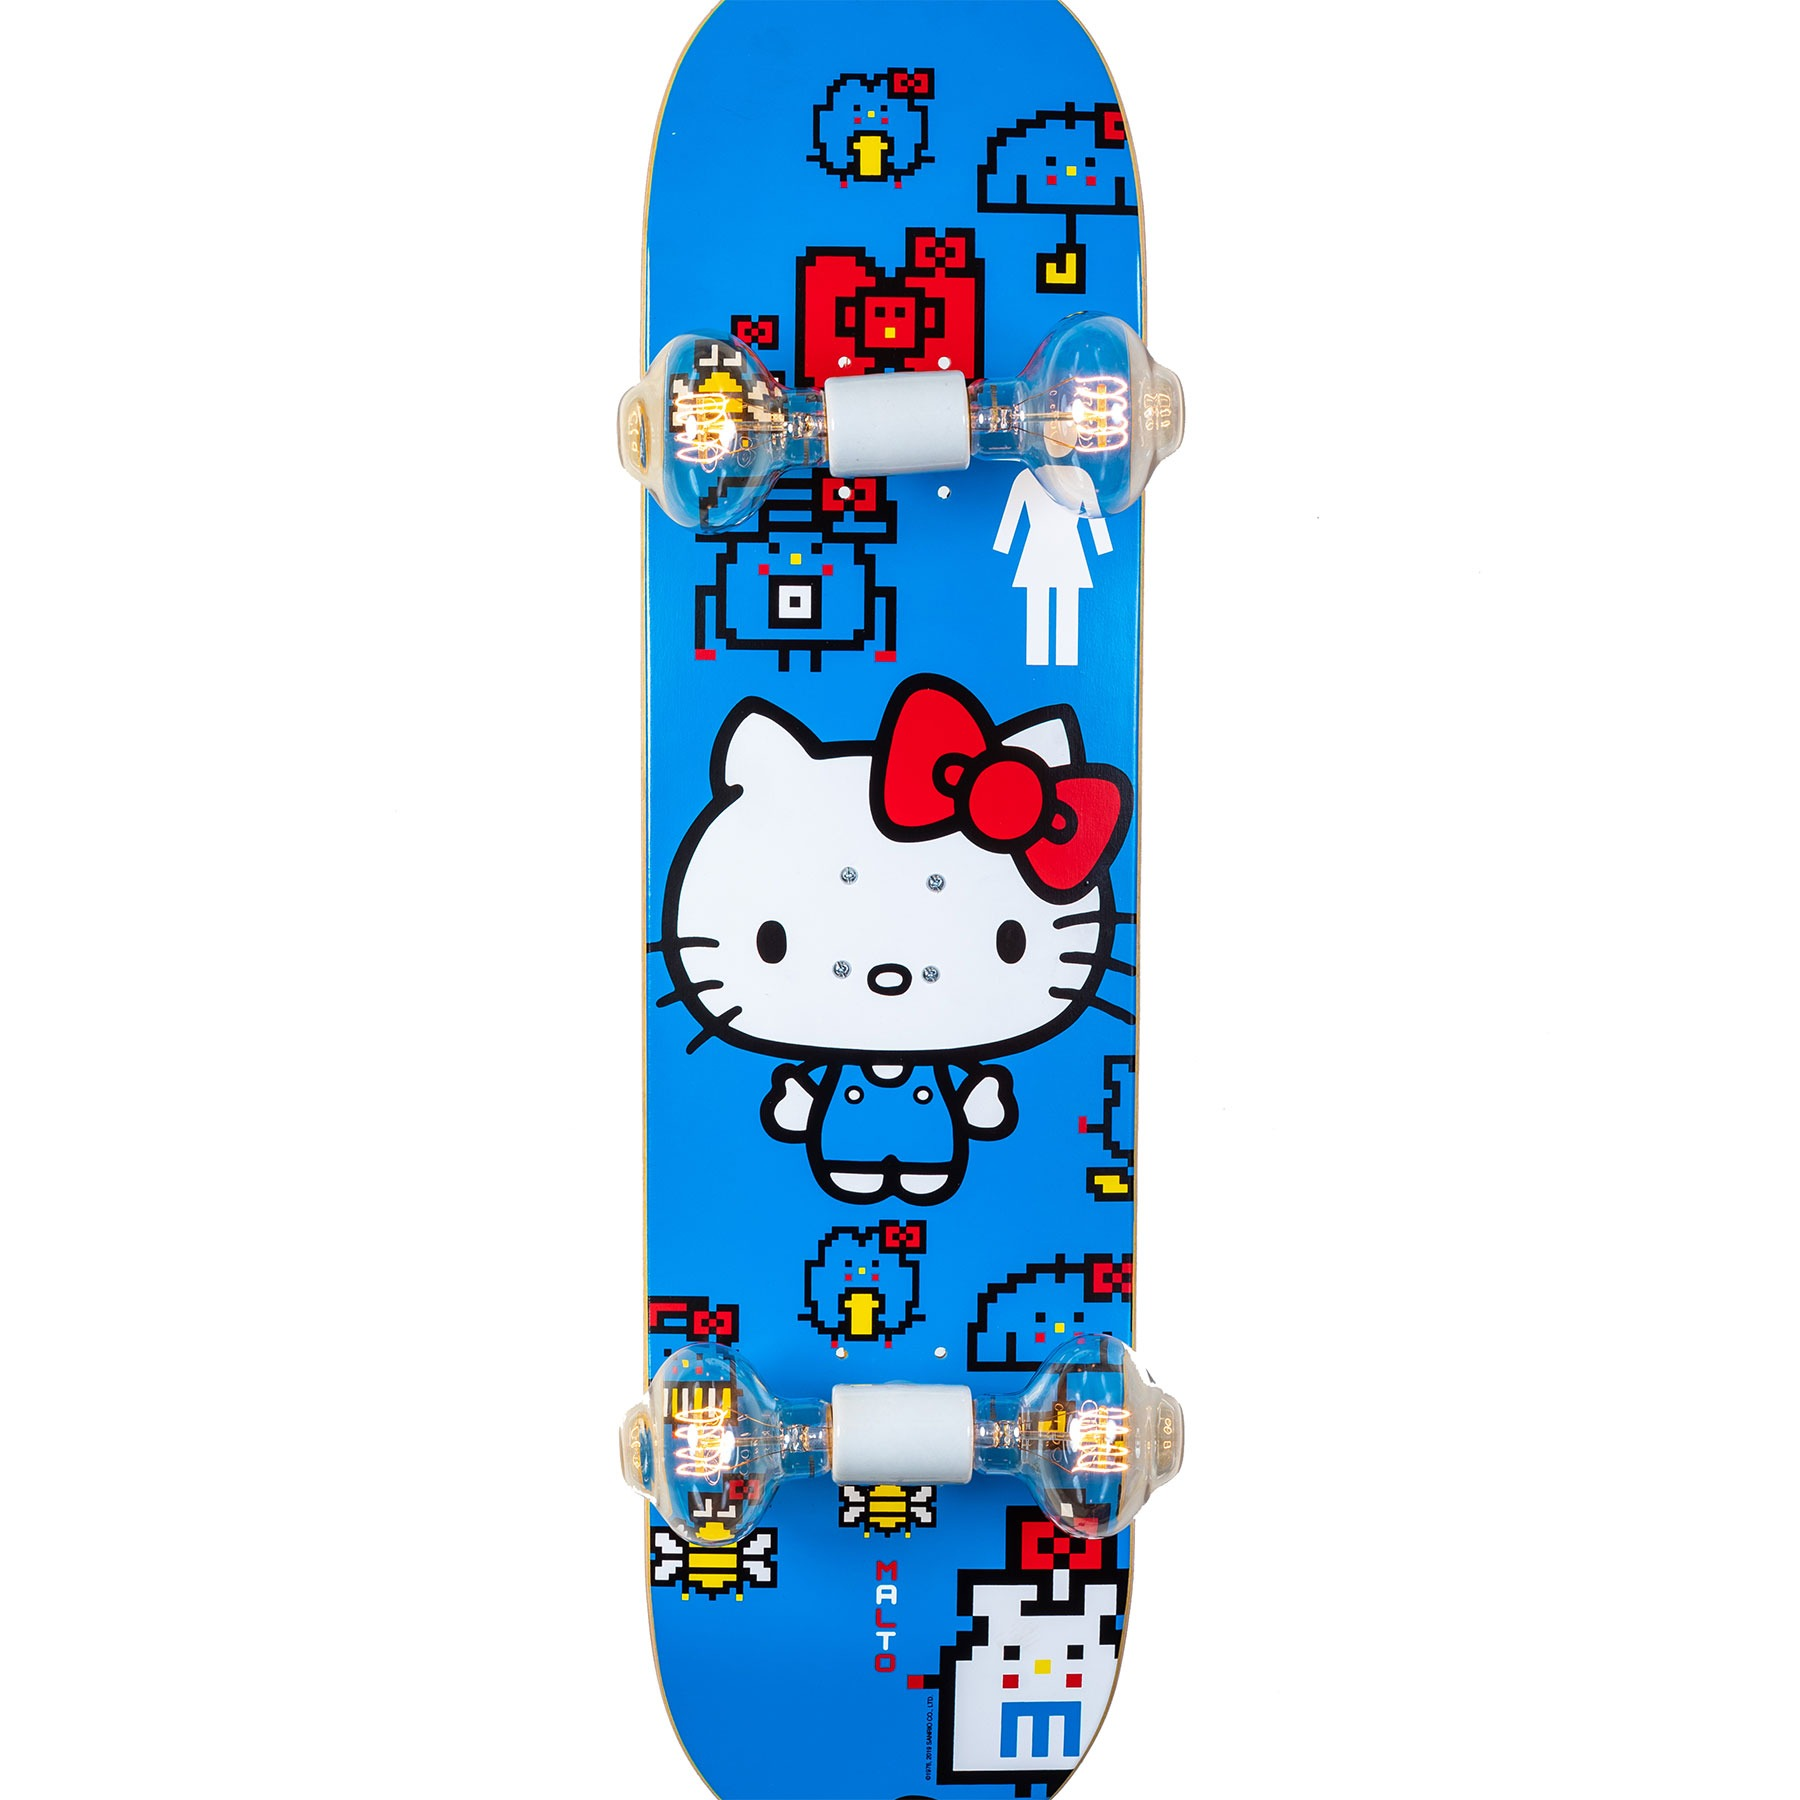 HelloKitty-maltoblue-square